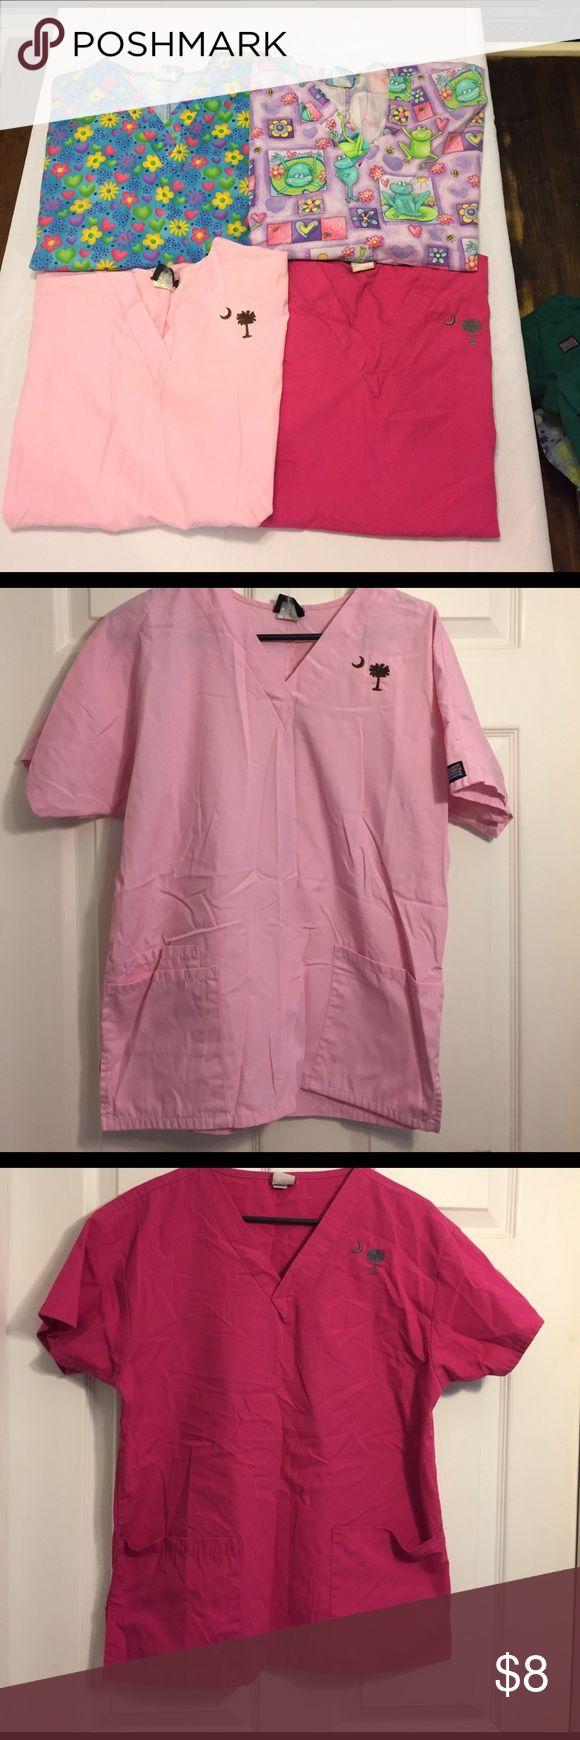 Lot of 4 Sz Small Scrub Tops. All 4 are size small. The tags are worn so you can't see size. The light pink is by Cherokee. The dark pink is by Dickies. These both have an embroidered palmetto tree and moon. The two print tops are by Scrub HQ. the price reflects the tags. Other